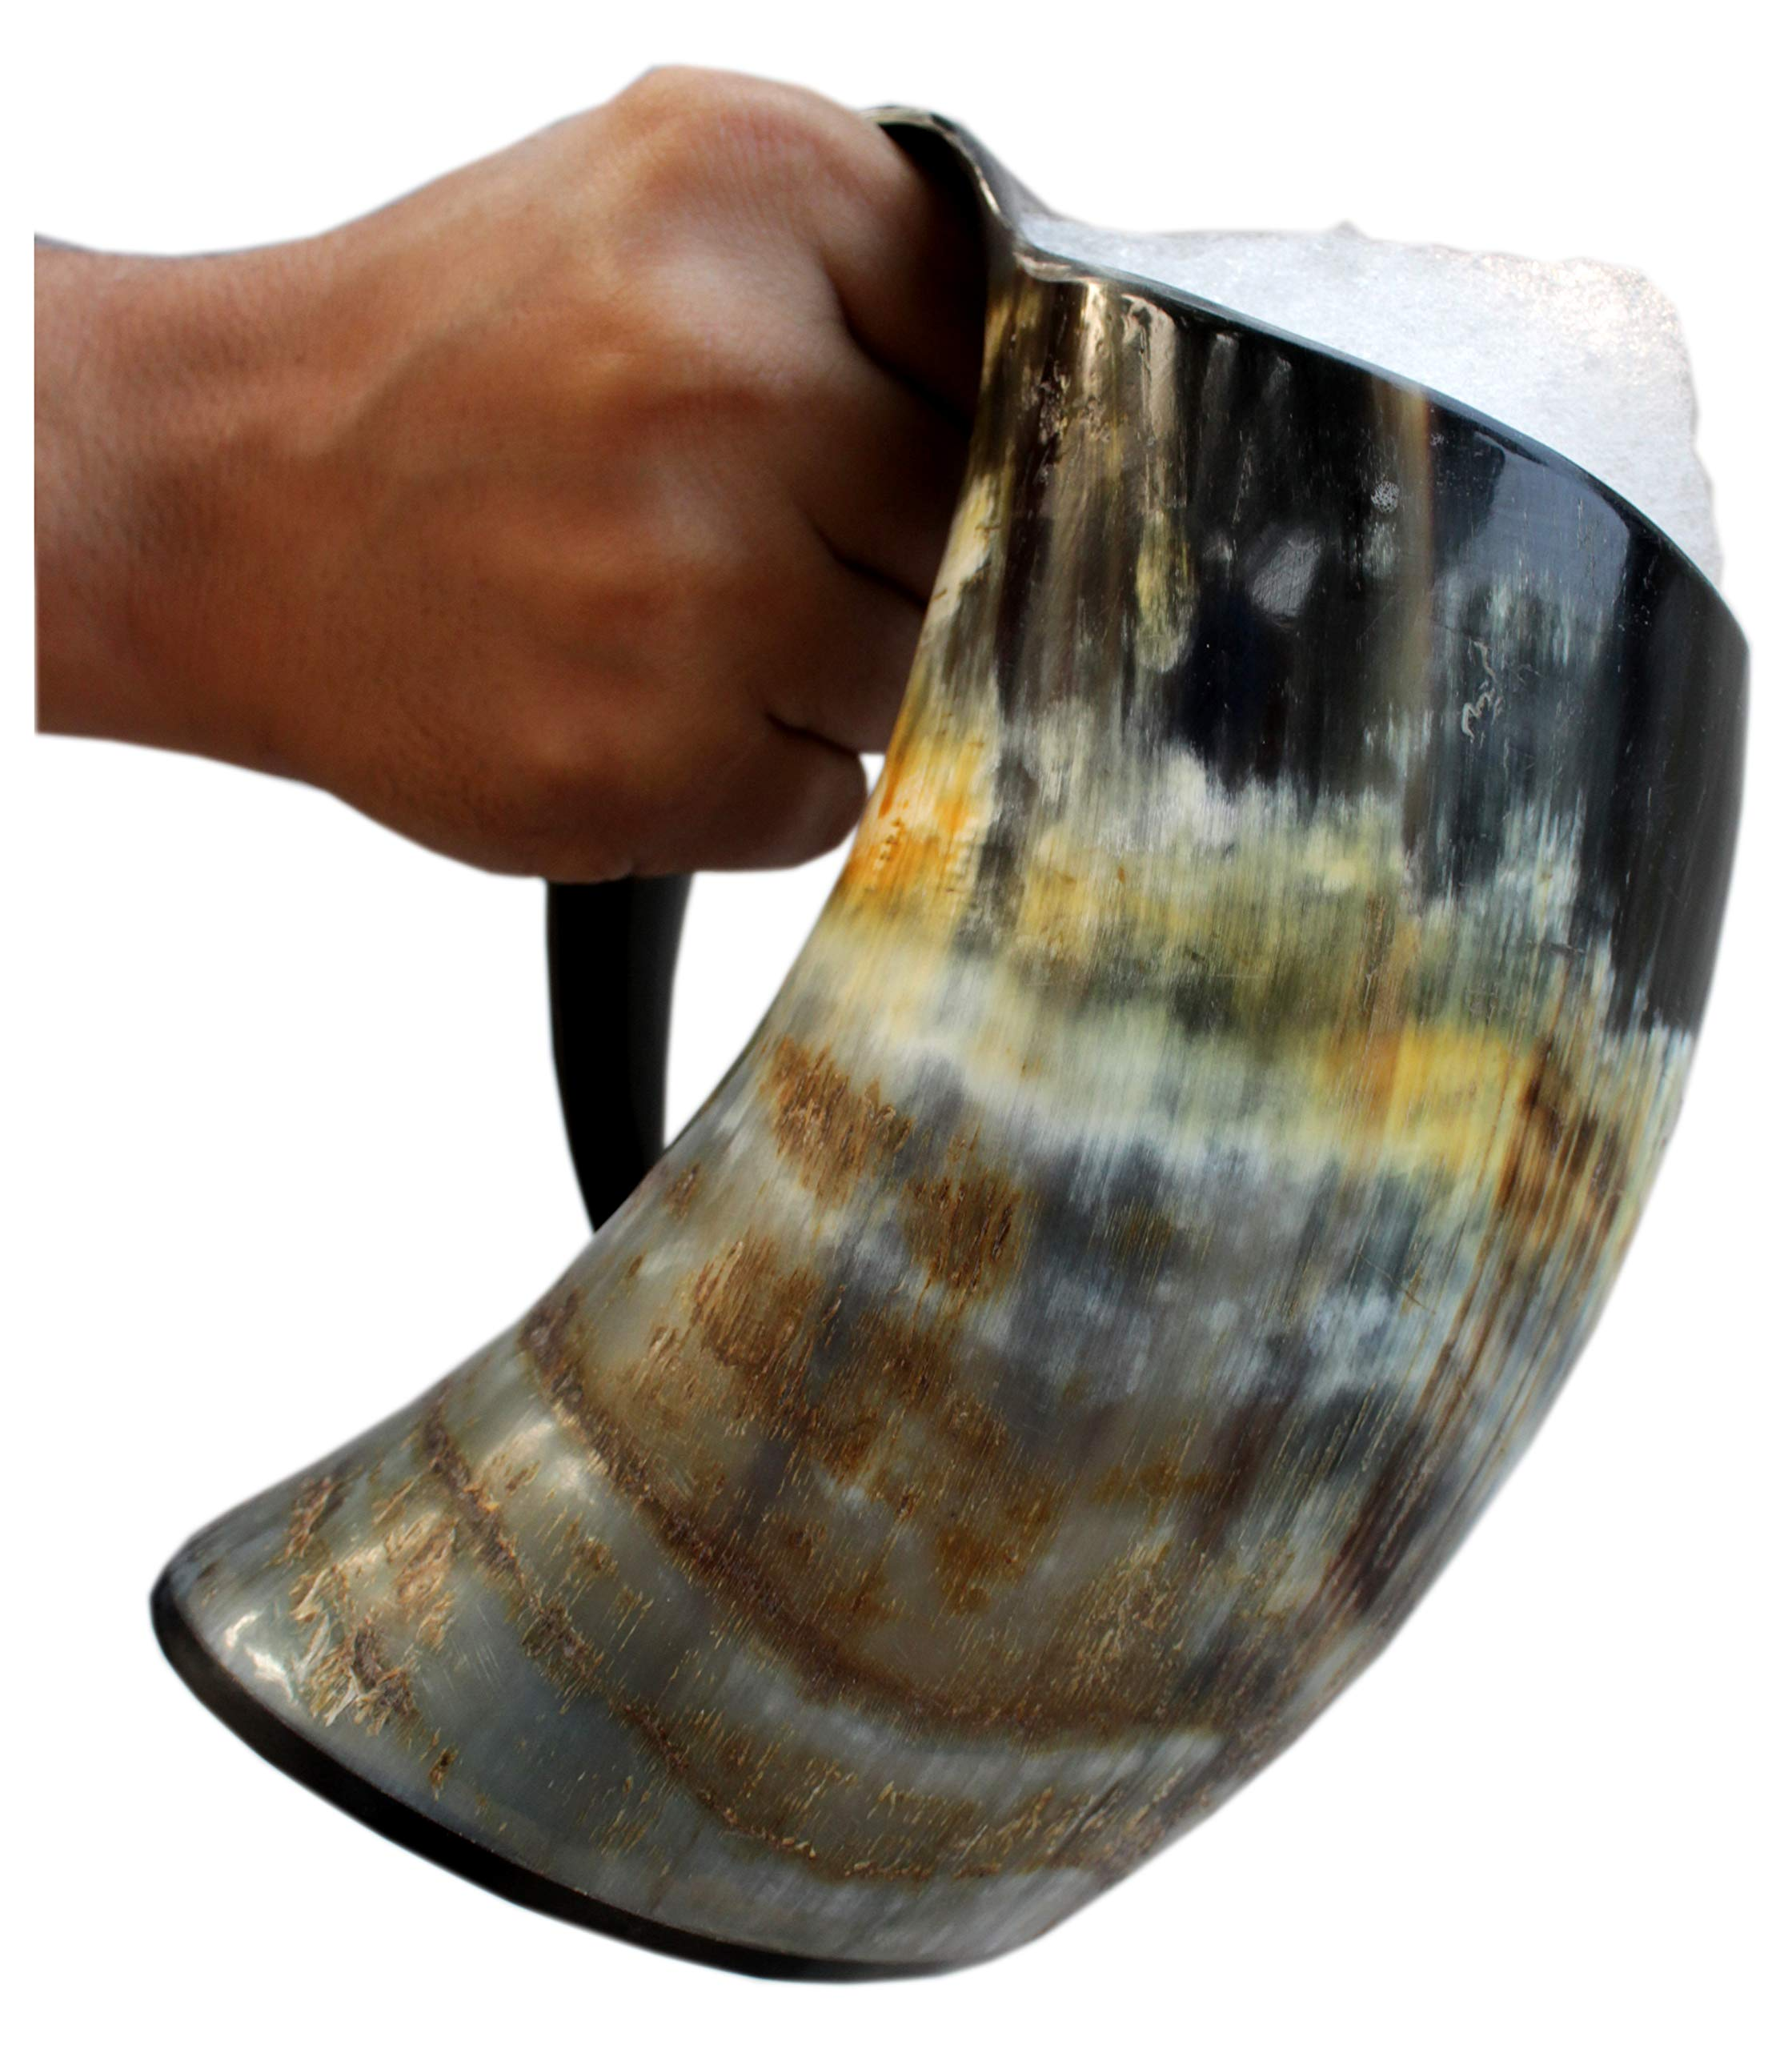 5MoonSun5's Viking Drinking Horn Cup Tankard Handcrafted Ox Cup Goblet - Drink Mead & Beer Like Game of Thrones Heroes with This Large Ale Stein A Perfect Present for Real Men (20oz)